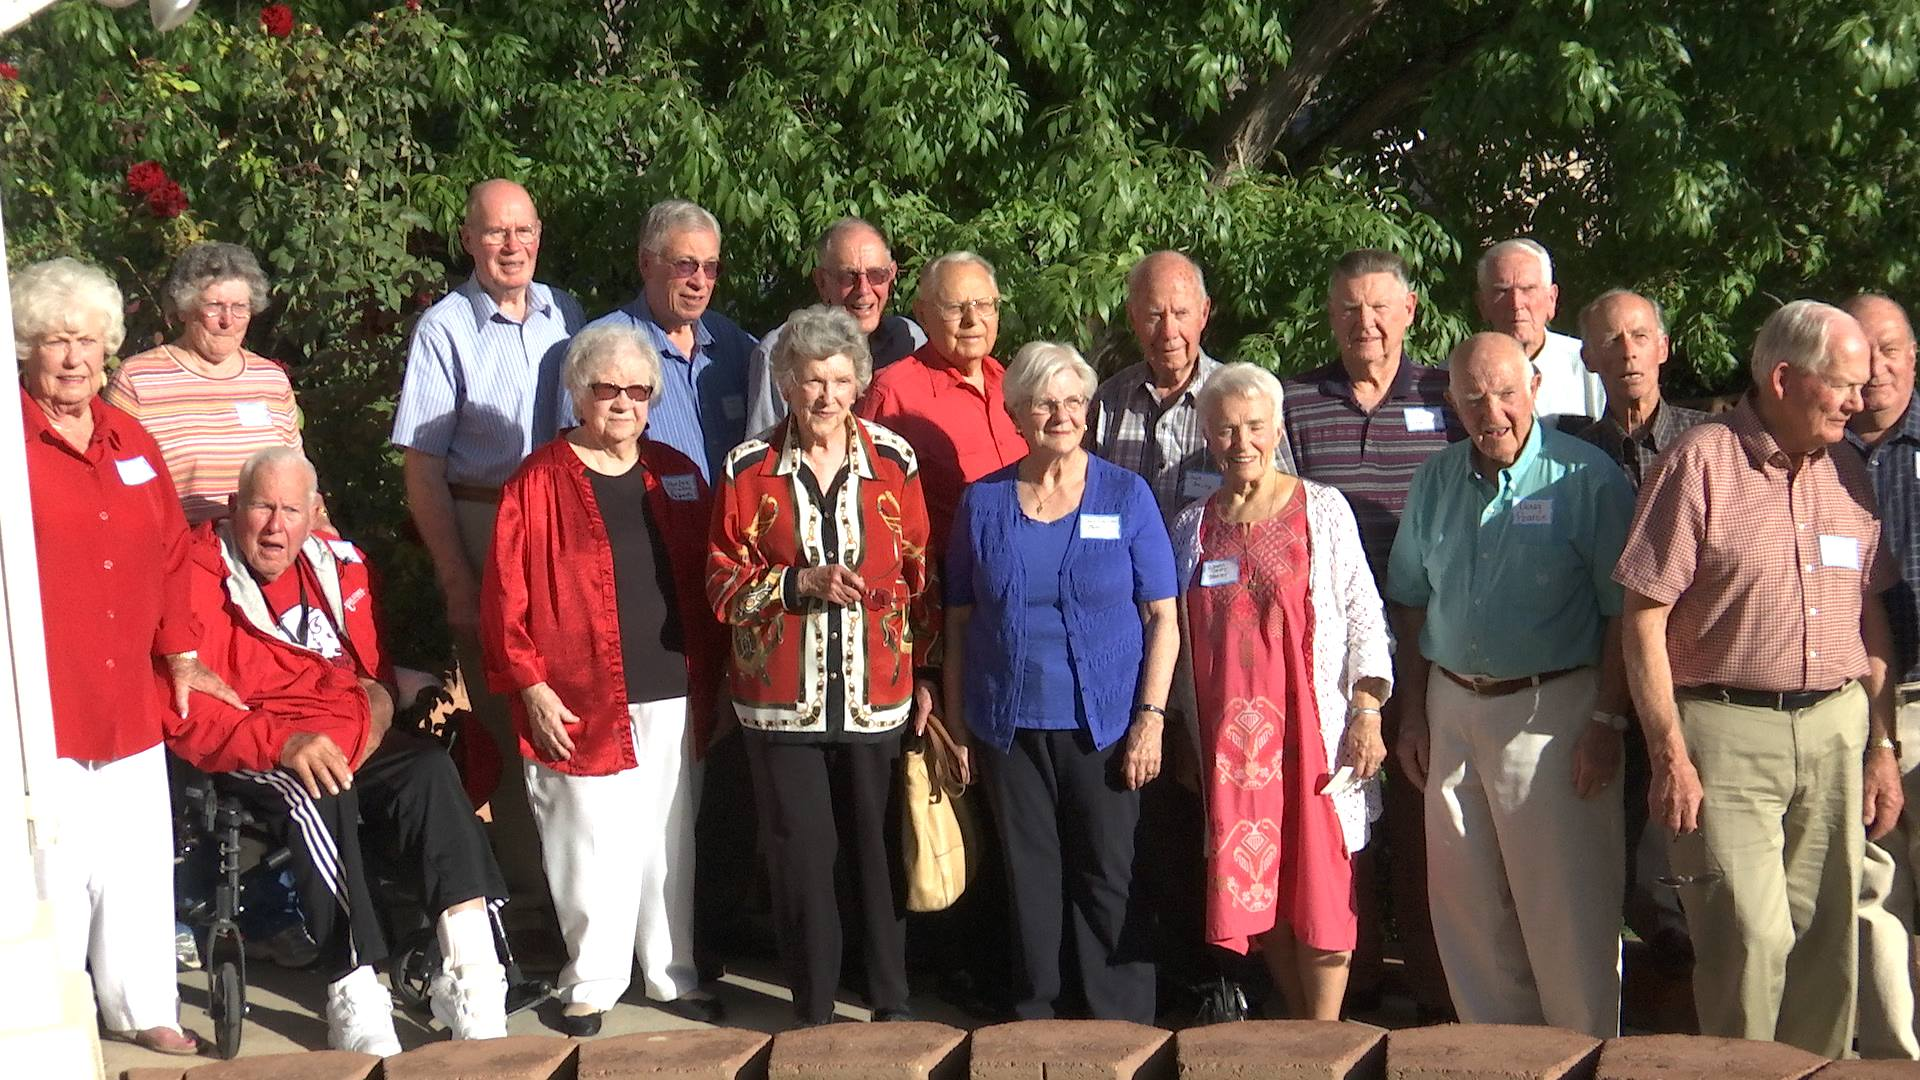 Alumni from Dixie High School and Dixie State University pose for a class picture at the Stephen and Maria Wade Alumni House, St. George, Utah, Oct. 22, 2016 | Photo by Austin Peck, St. George News